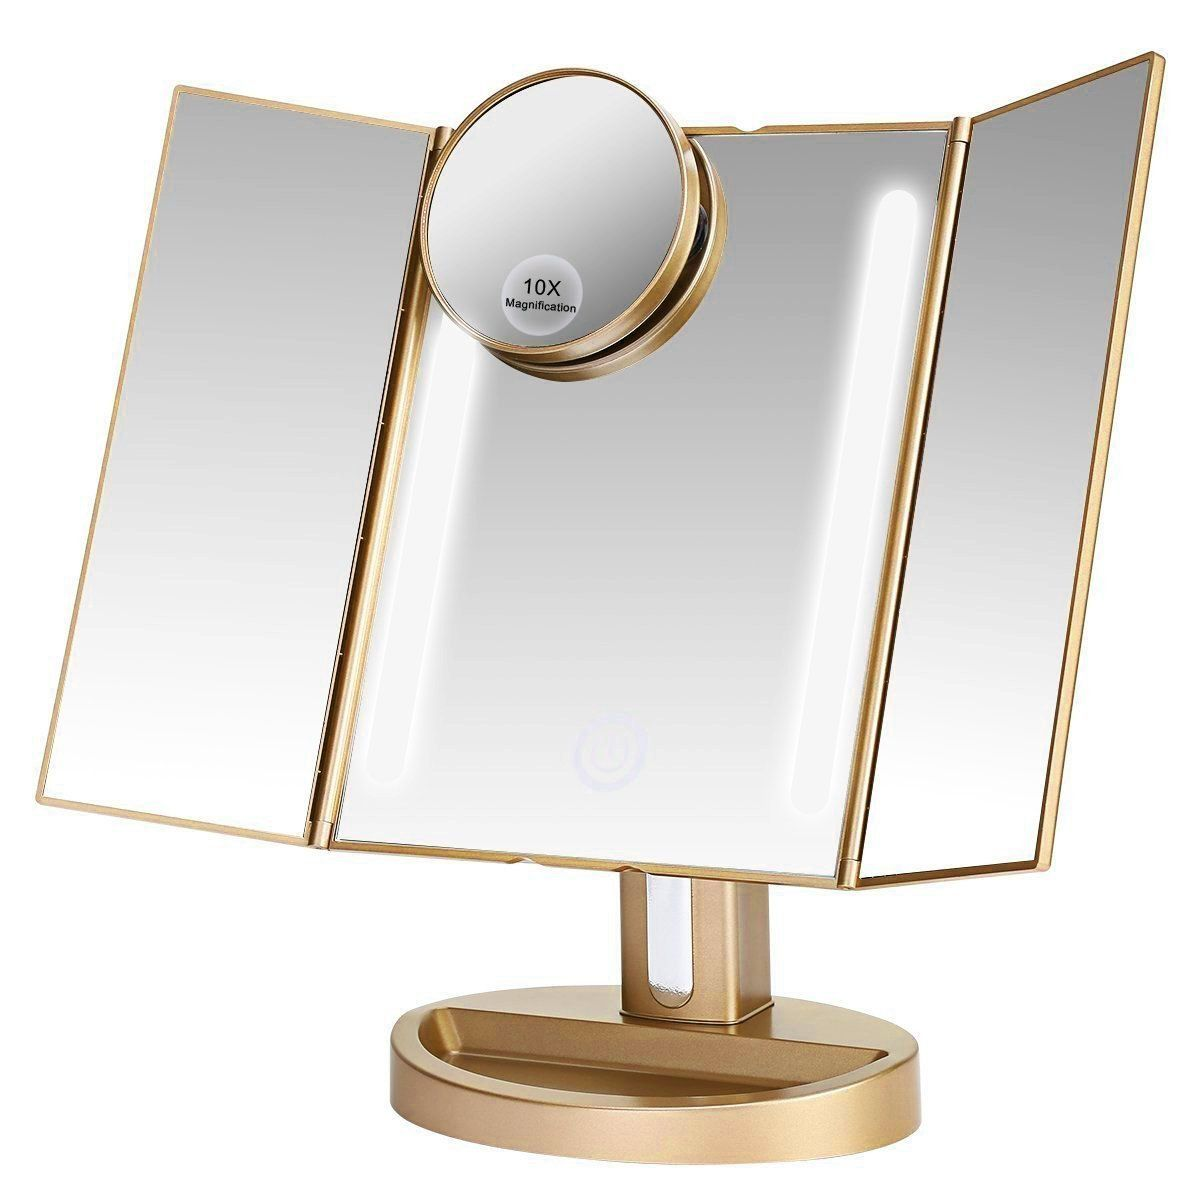 Leju makeup mirror natural daylight lighted vanity mirror with